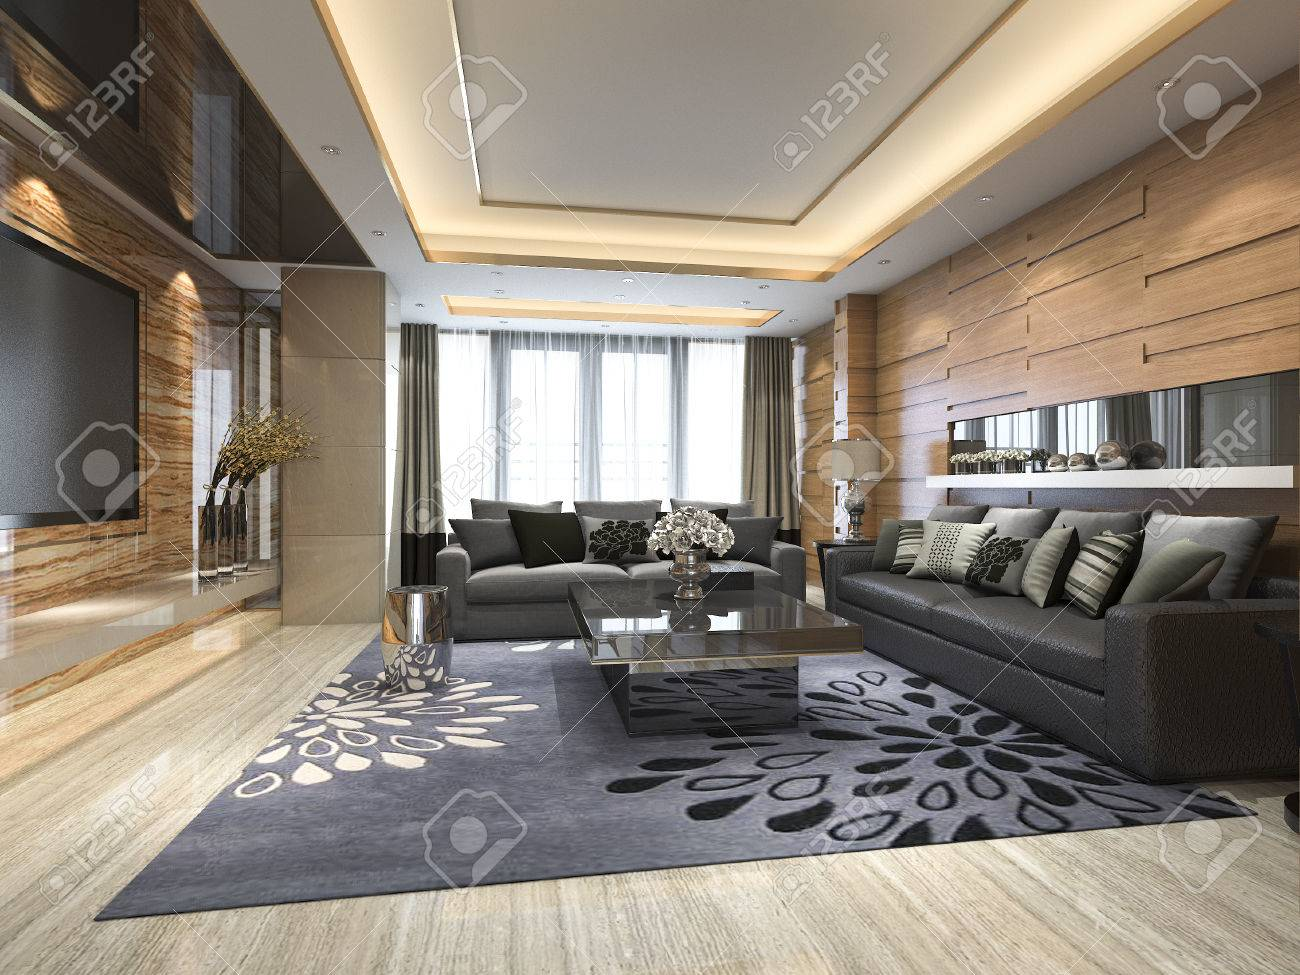 3d rendering luxury and modern living room with leather sofa